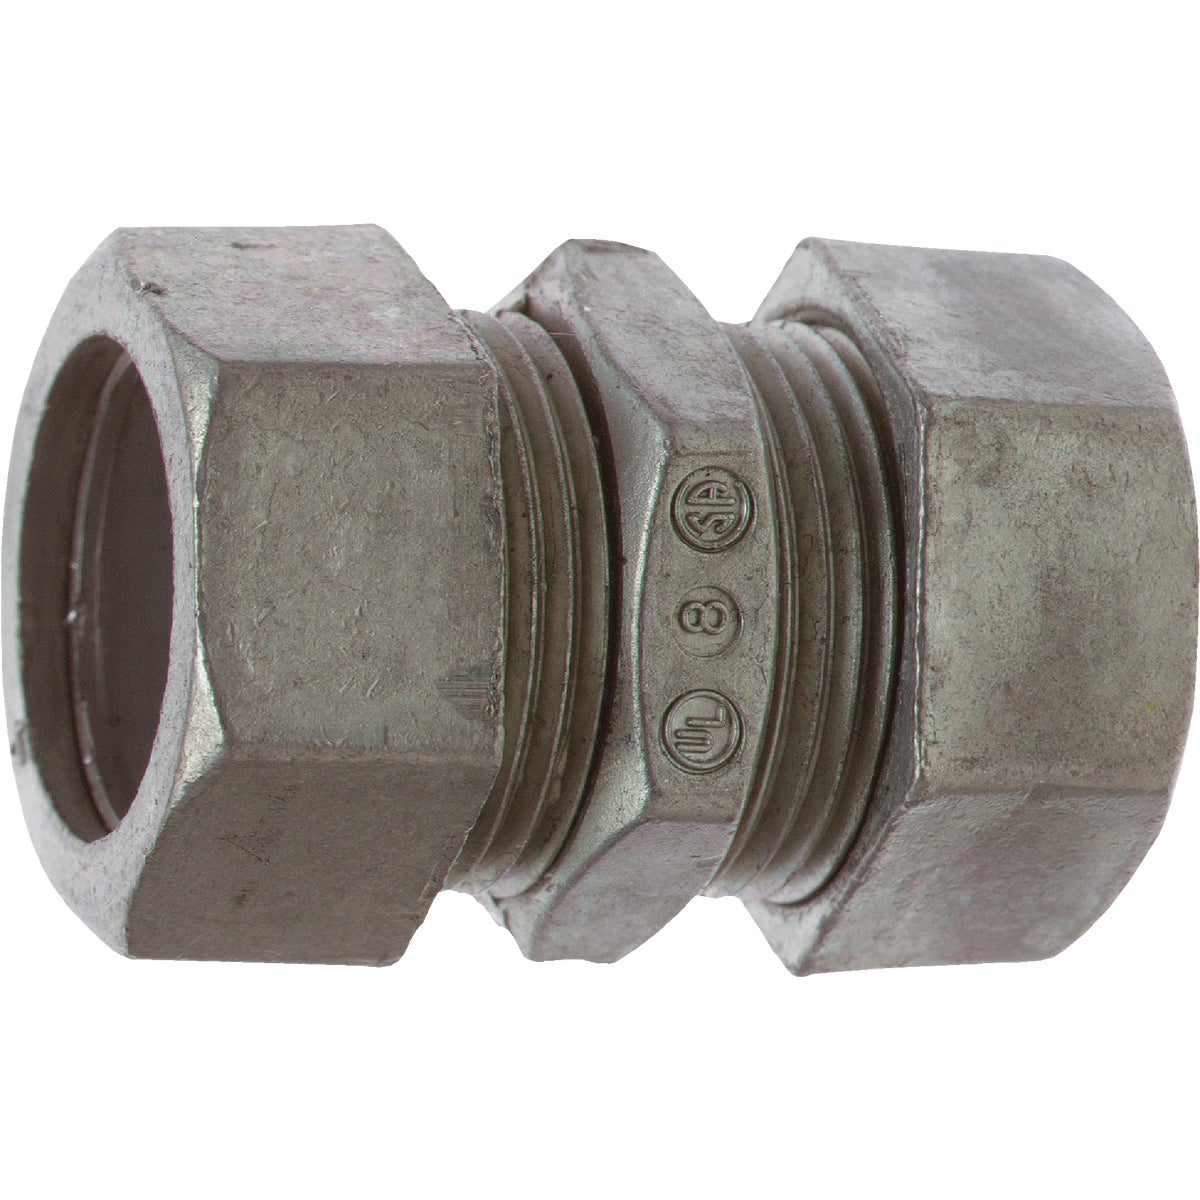 "3/4"" EMT COUPLING - TK212SC1 by Thomas & Betts"